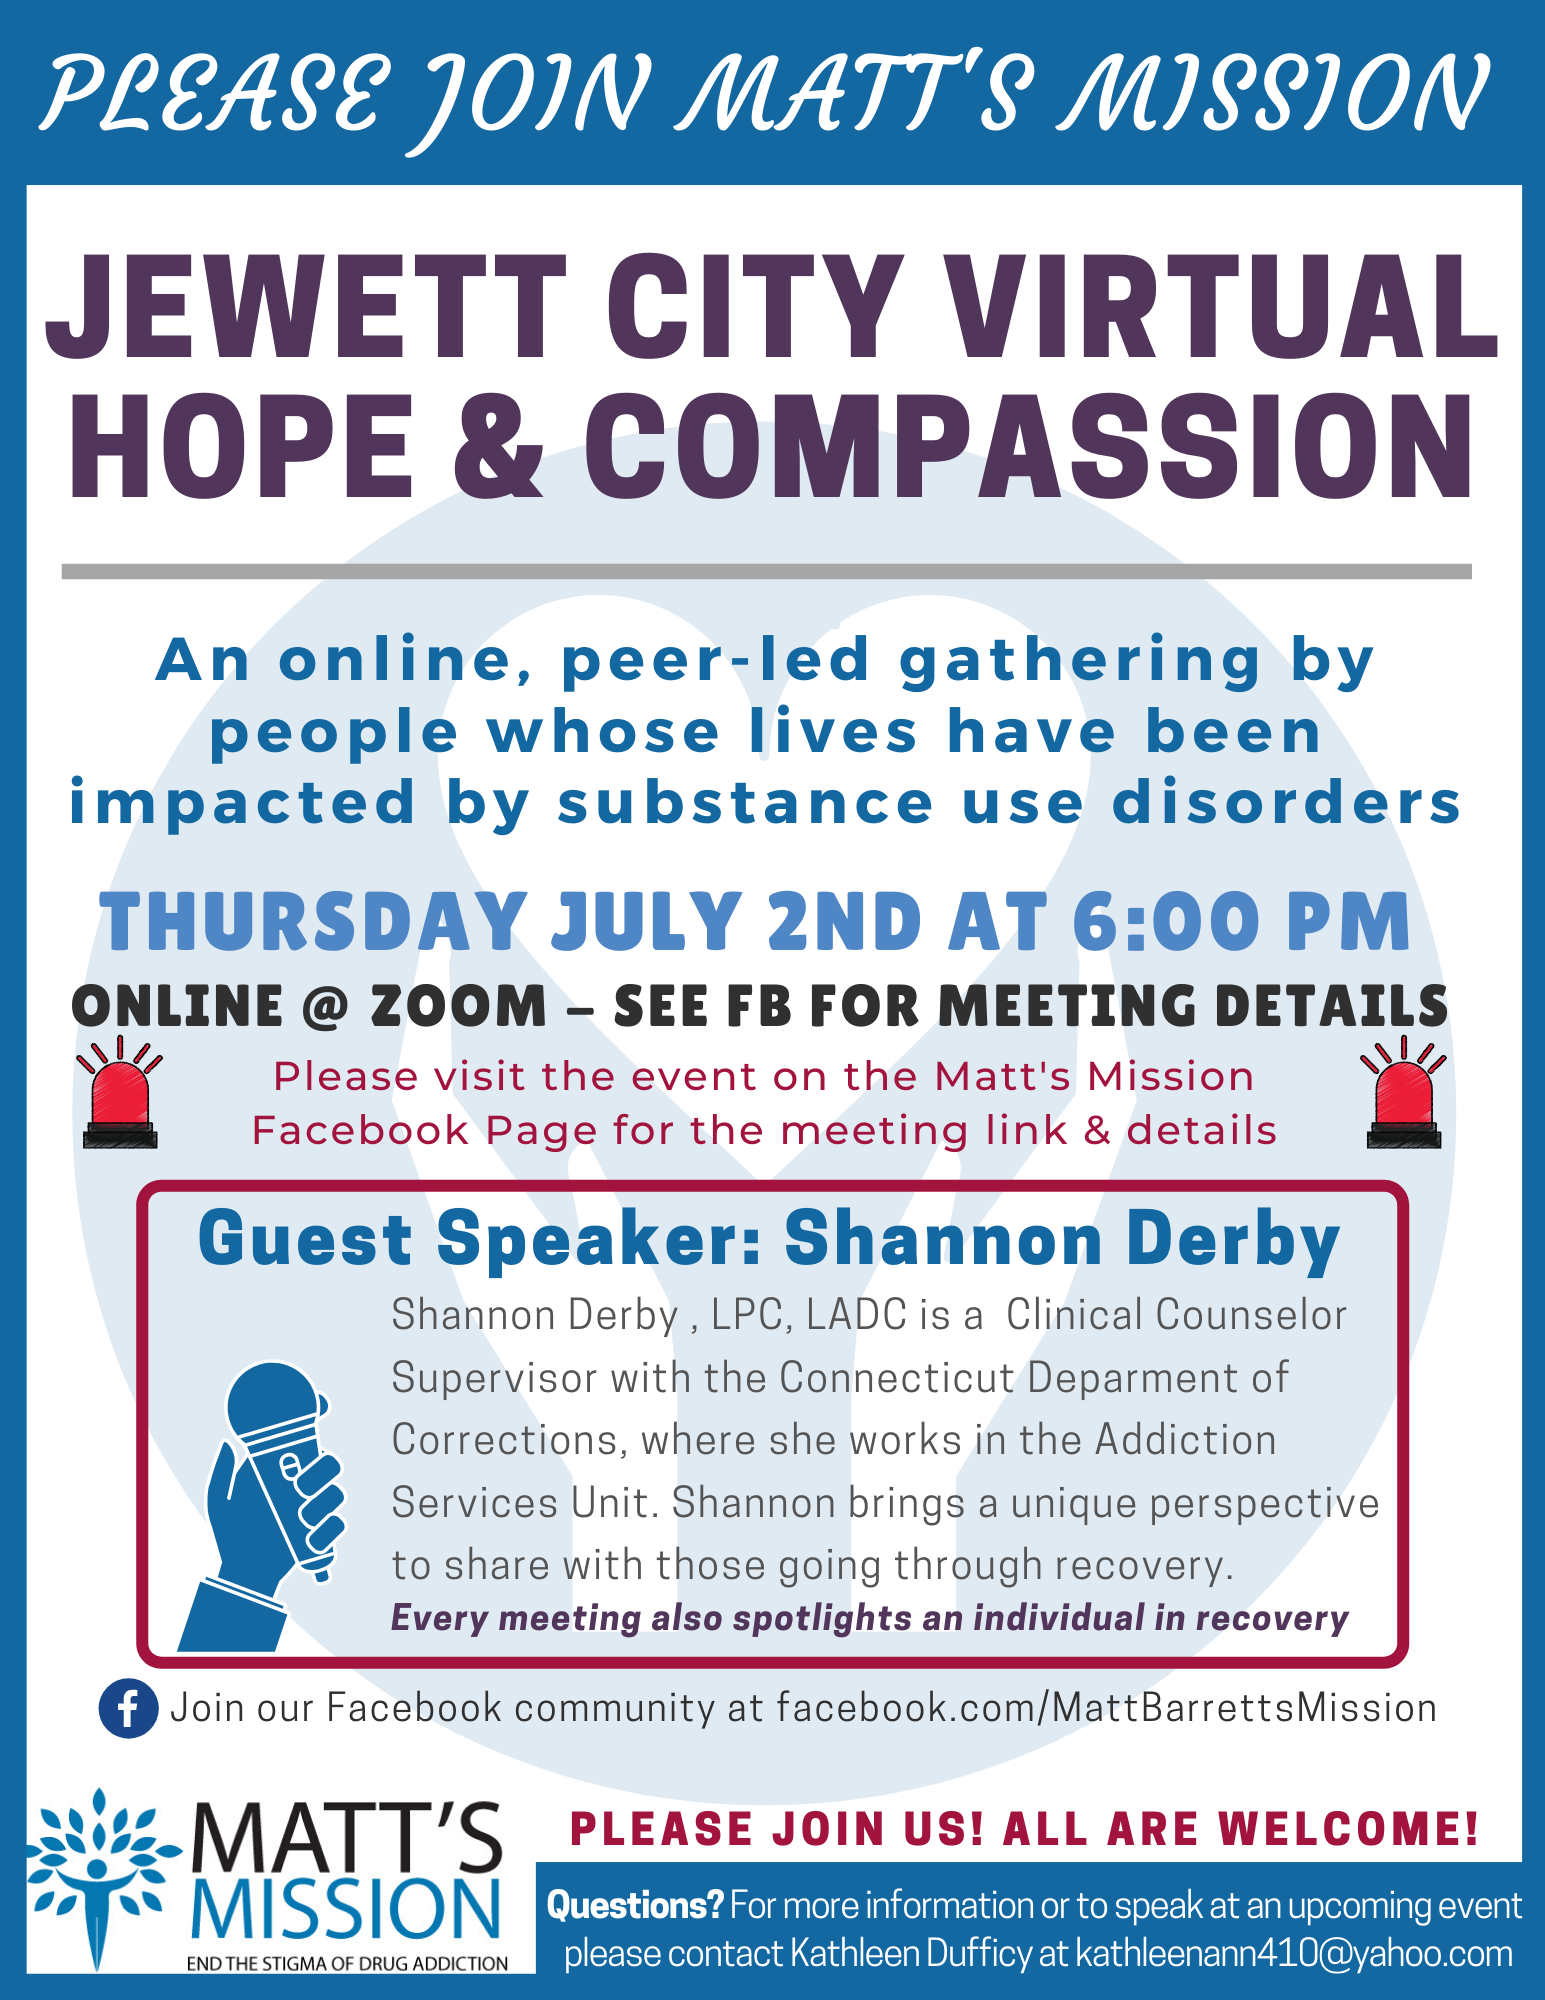 Join us for Jewett City Hope and Compassion on July 2nd, 2020.